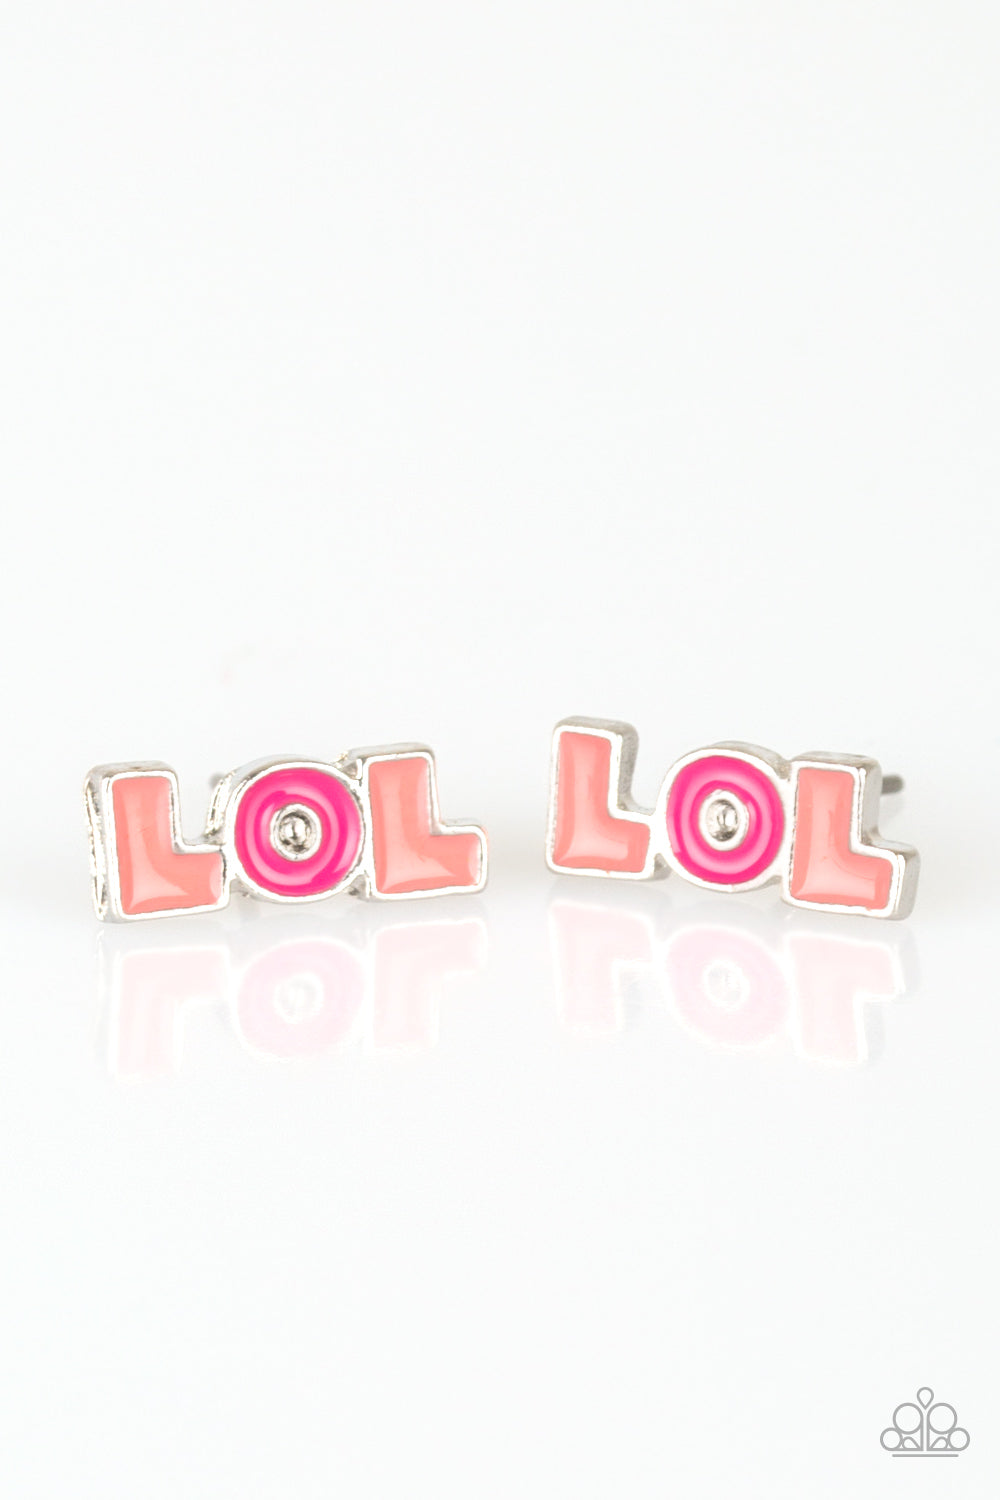 LOL Kid's Earrings - also for the Kid-at-Heart